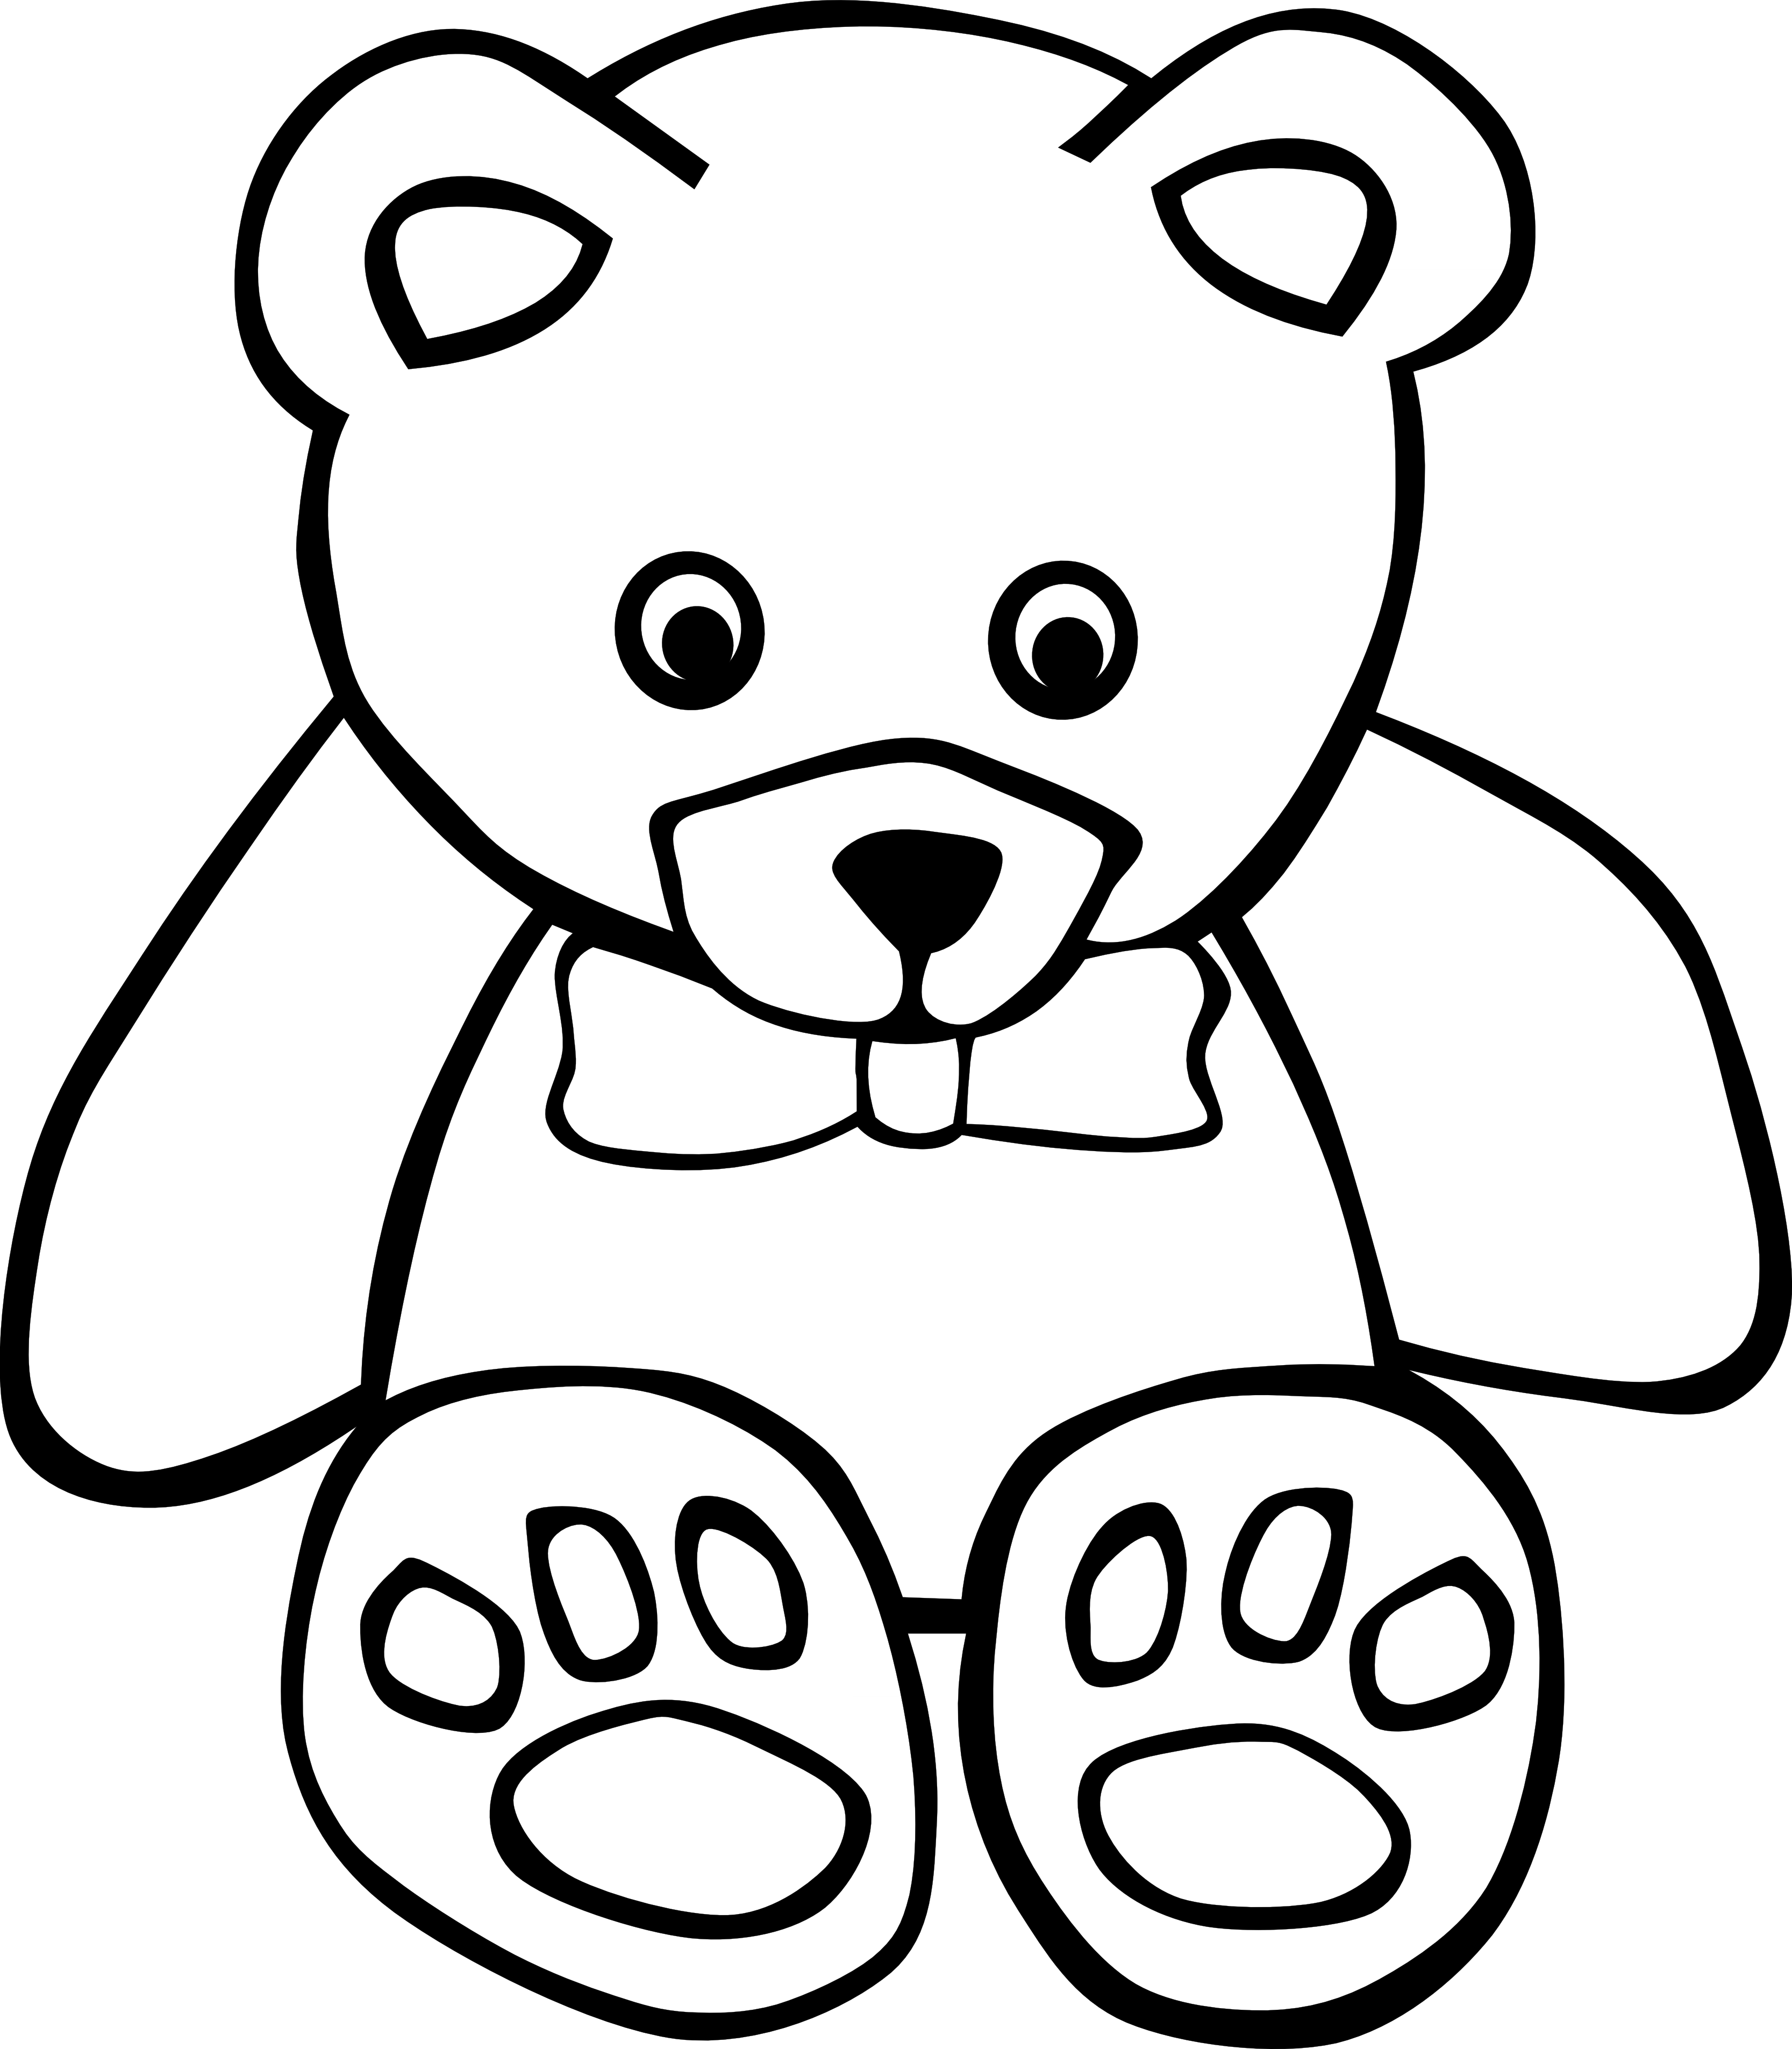 svg library library drawing toy teddy bear #112349277